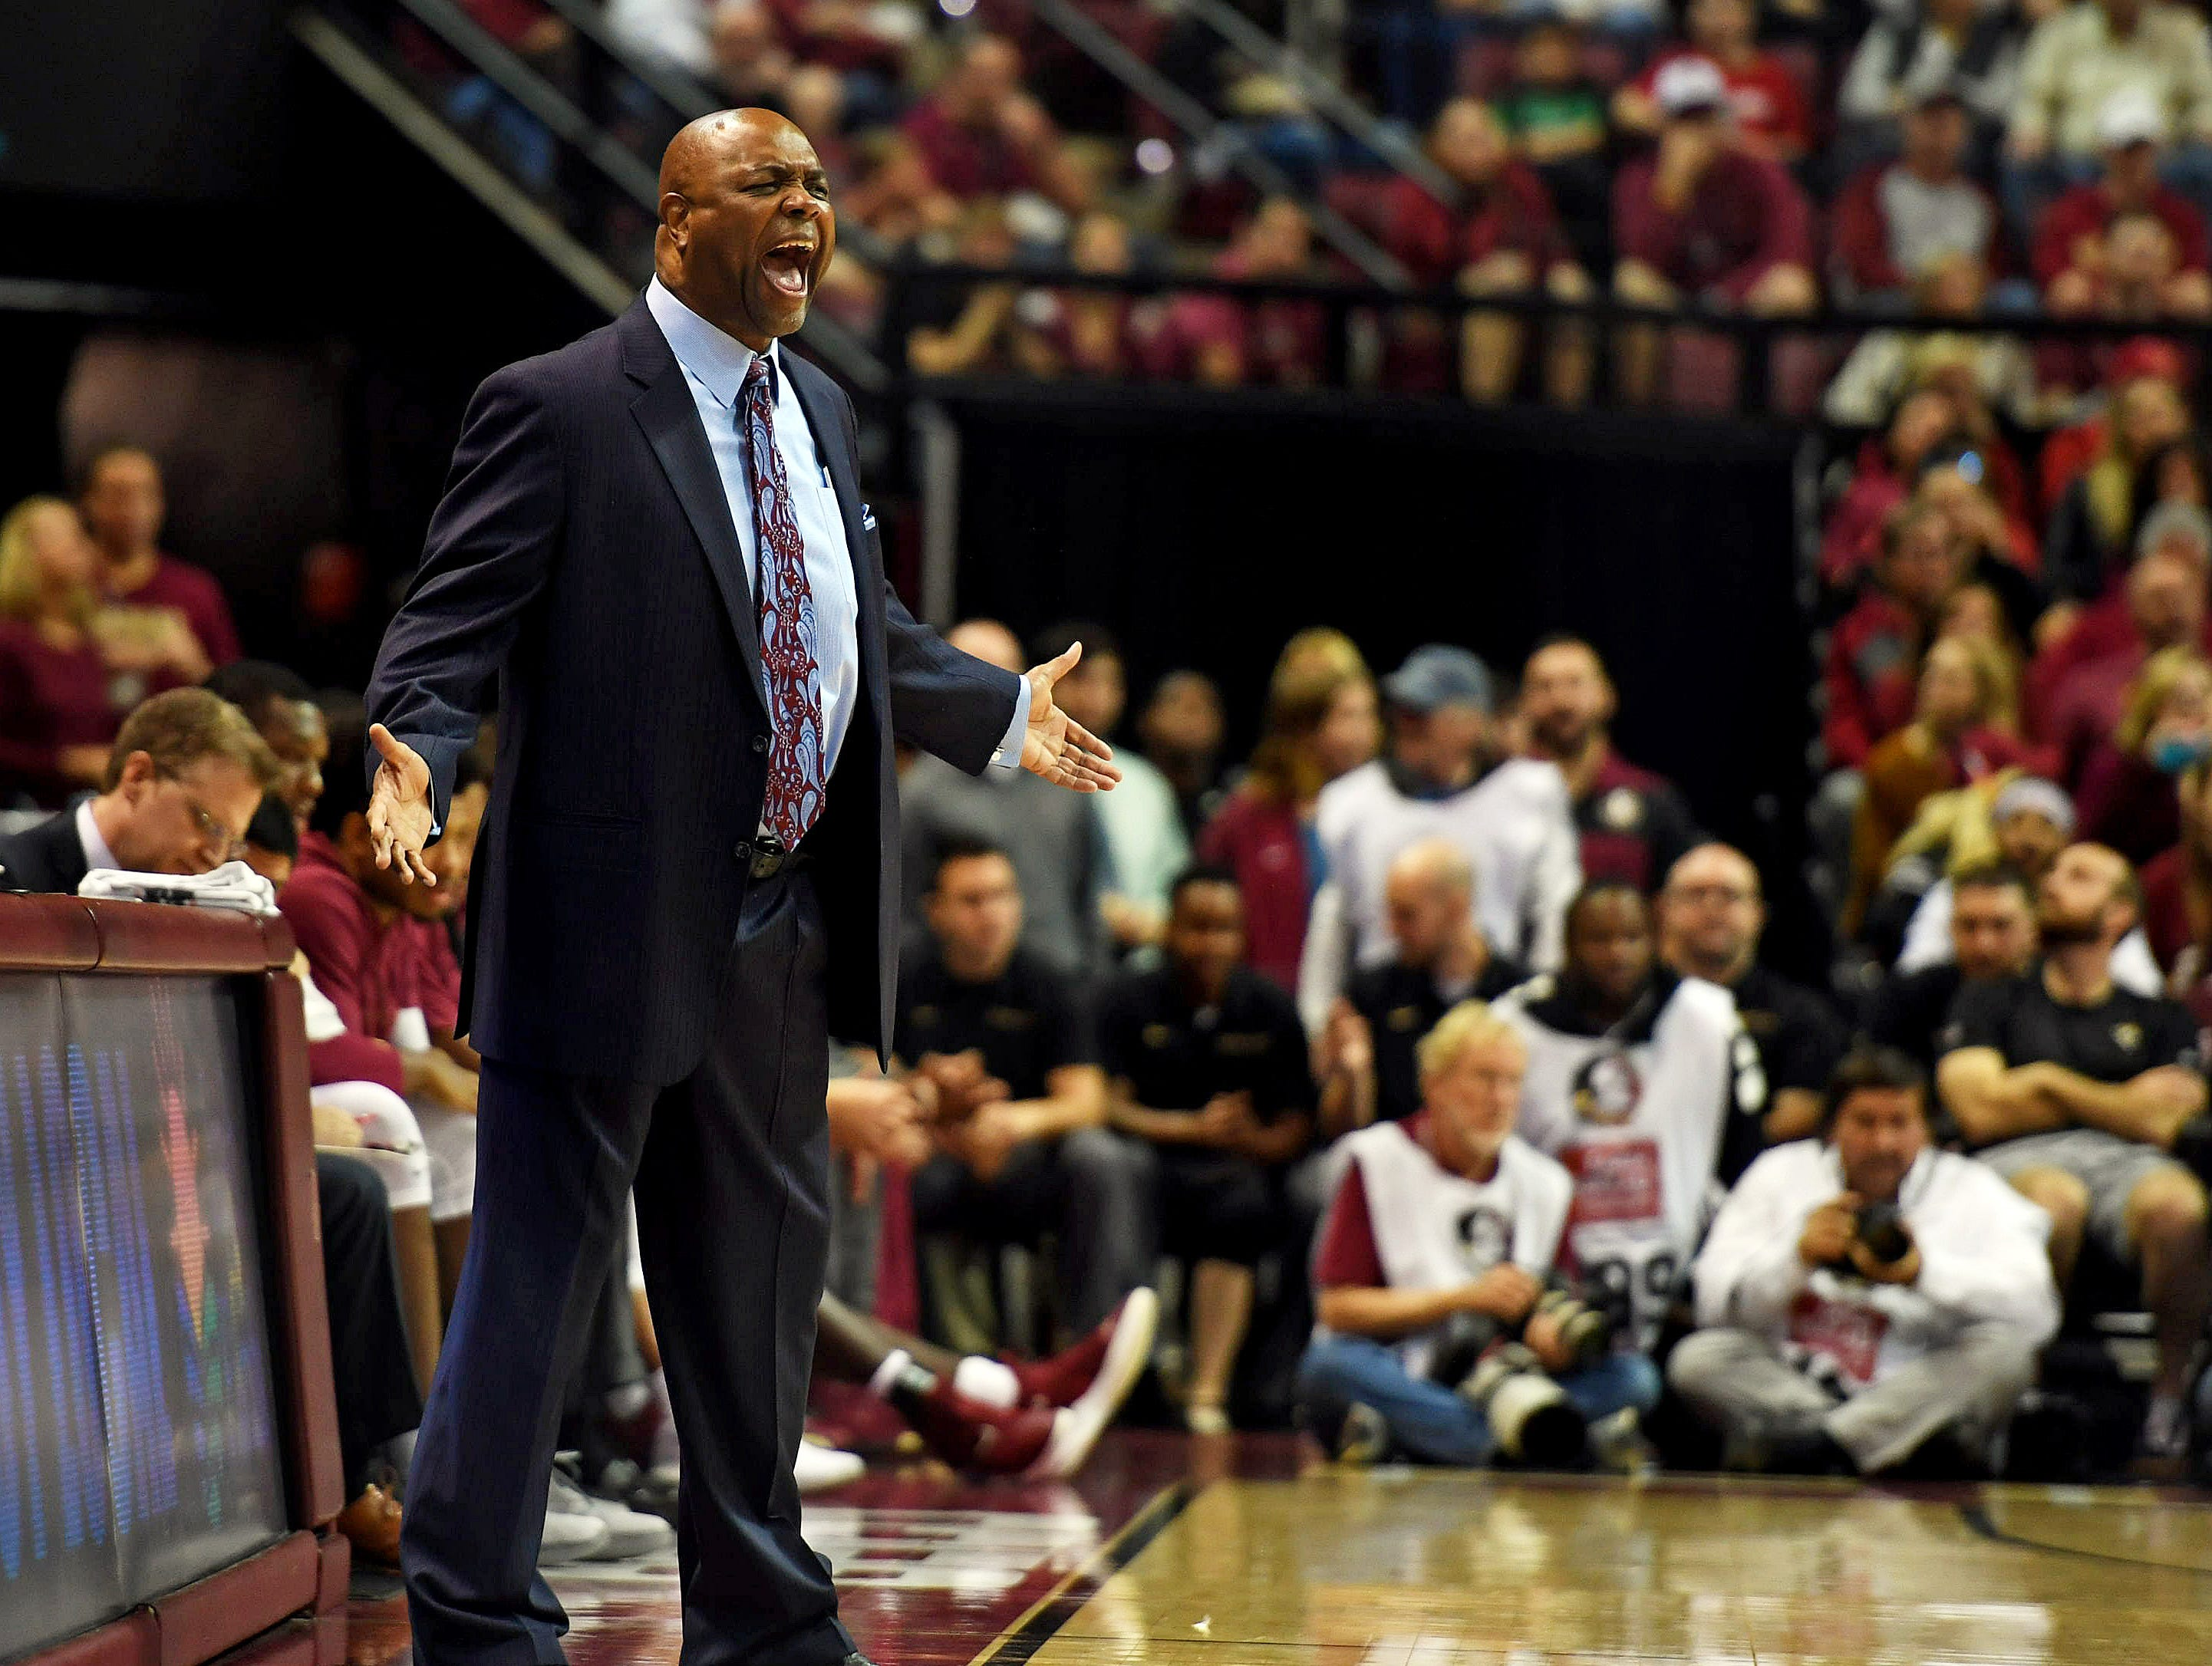 Feb 9, 2019; Tallahassee, FL, USA; Florida State Seminoles head coach Leonard Hamilton reacts during the second half against the Louisville Cardinals at Donald L. Tucker Center. Mandatory Credit: Melina Myers-USA TODAY Sports